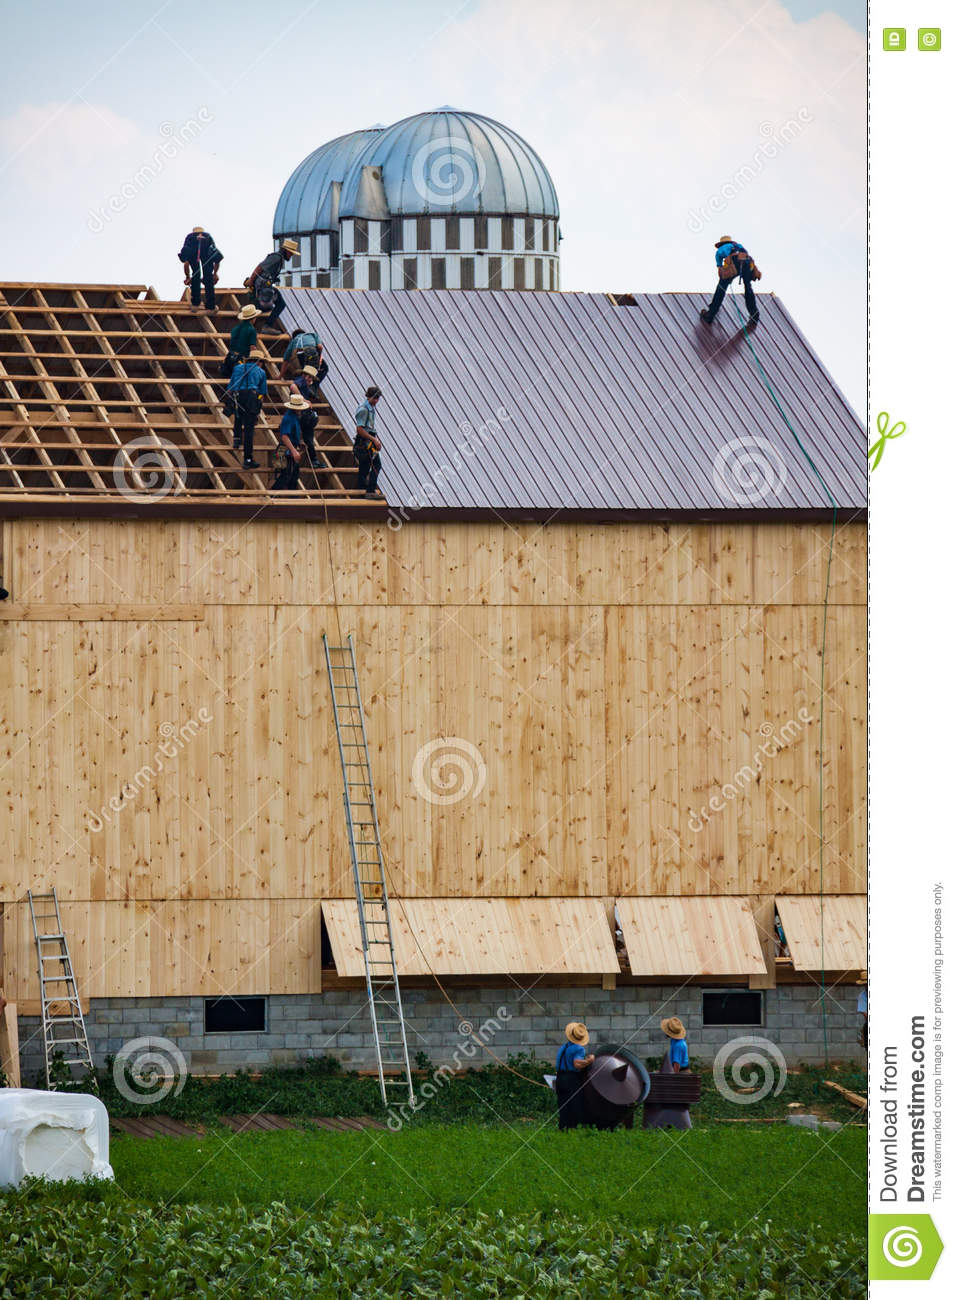 Amish Work on Barn Roof